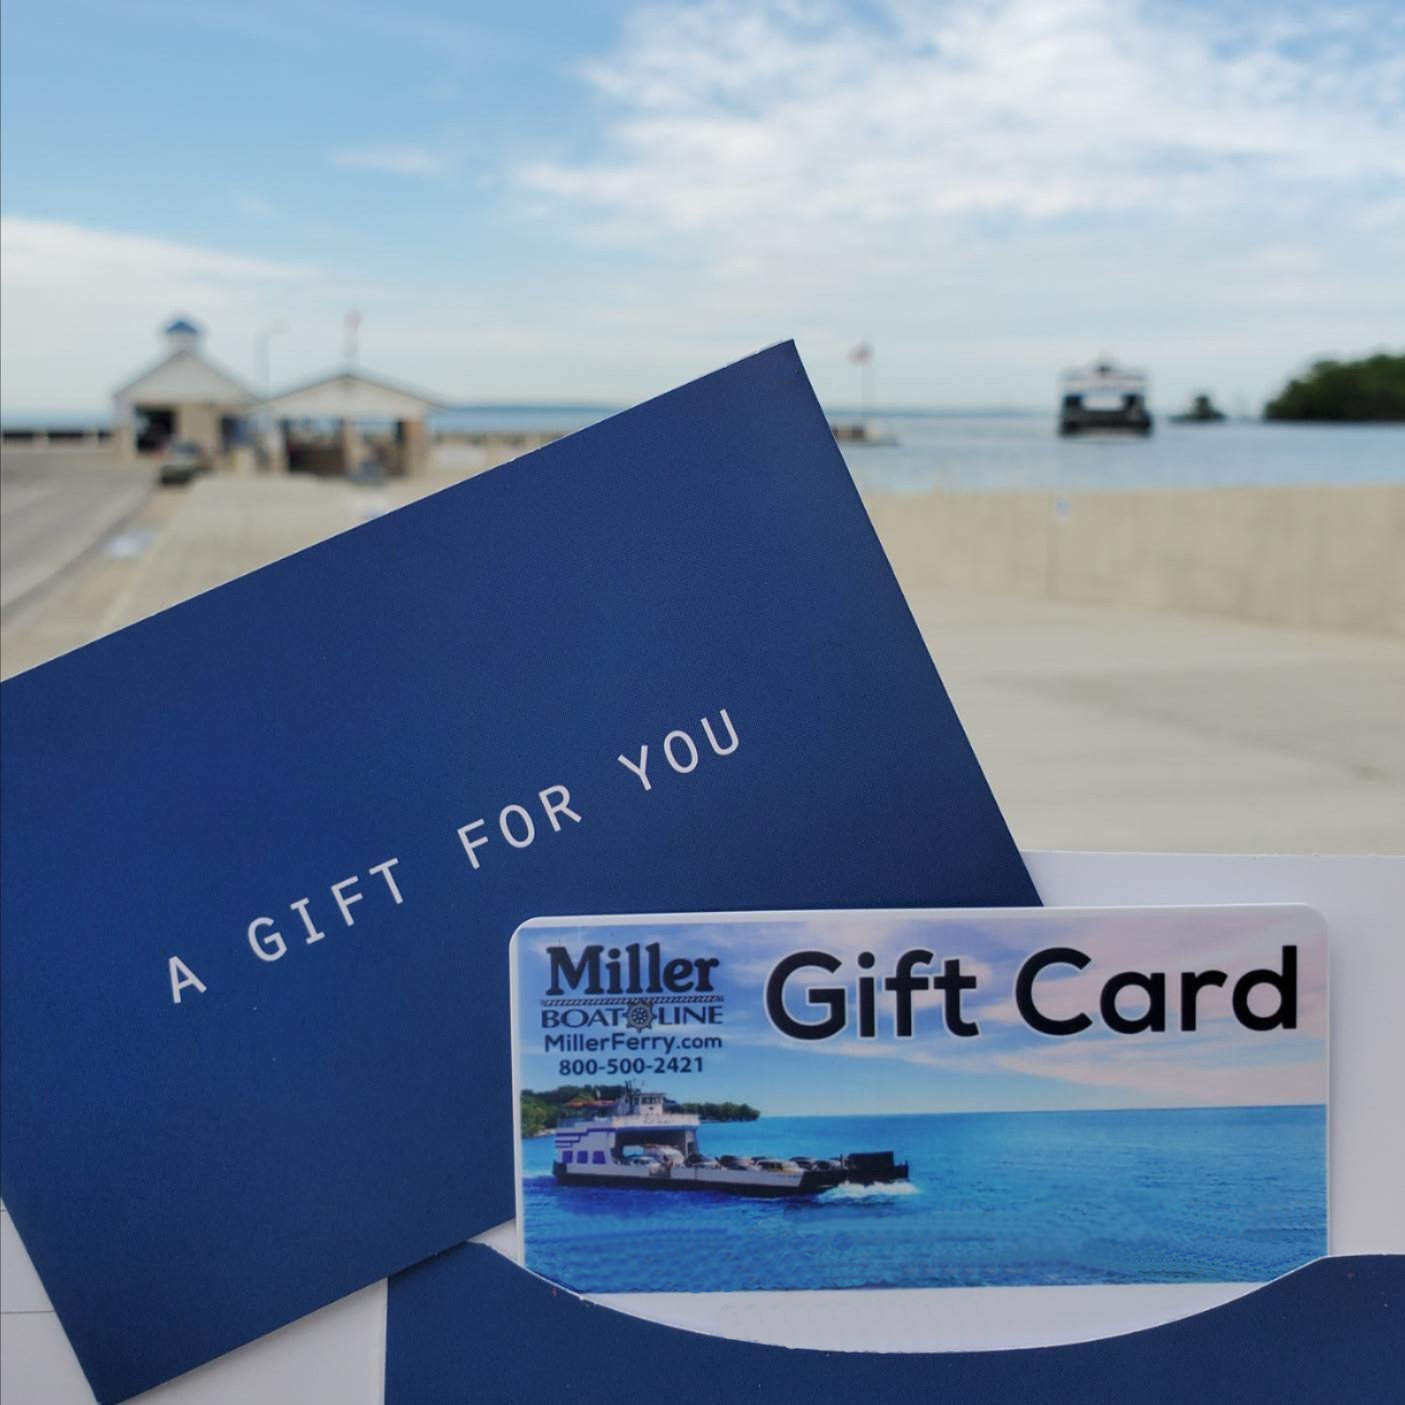 Miller Ferry Gift Cards are available